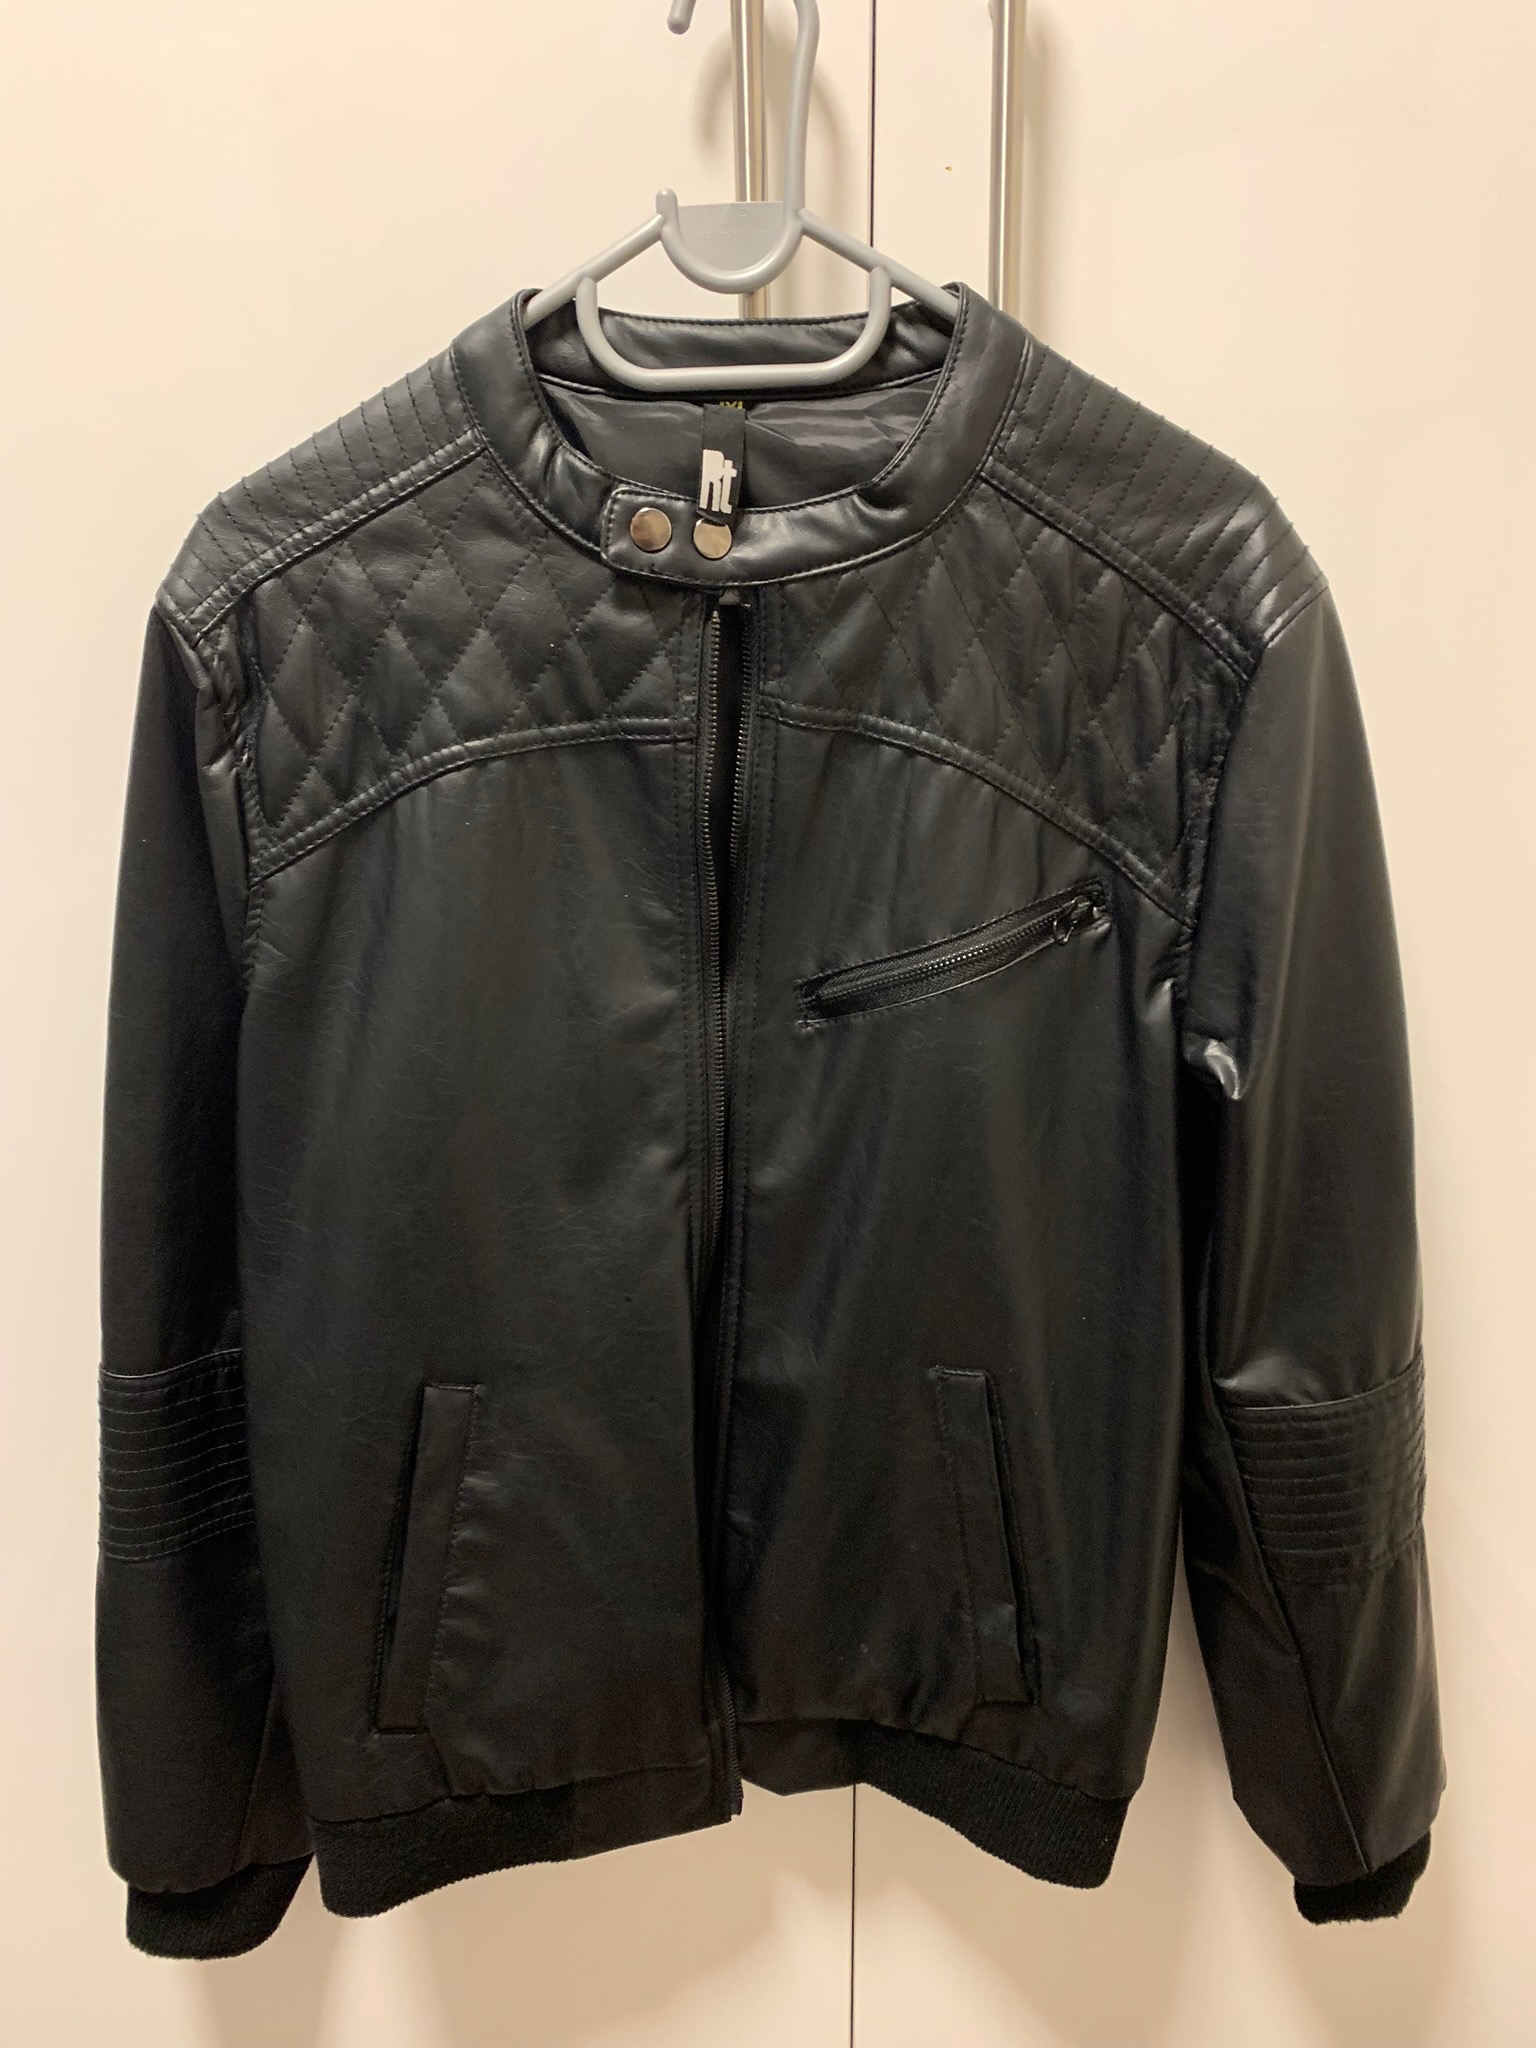 Rt synthetic leather jacket